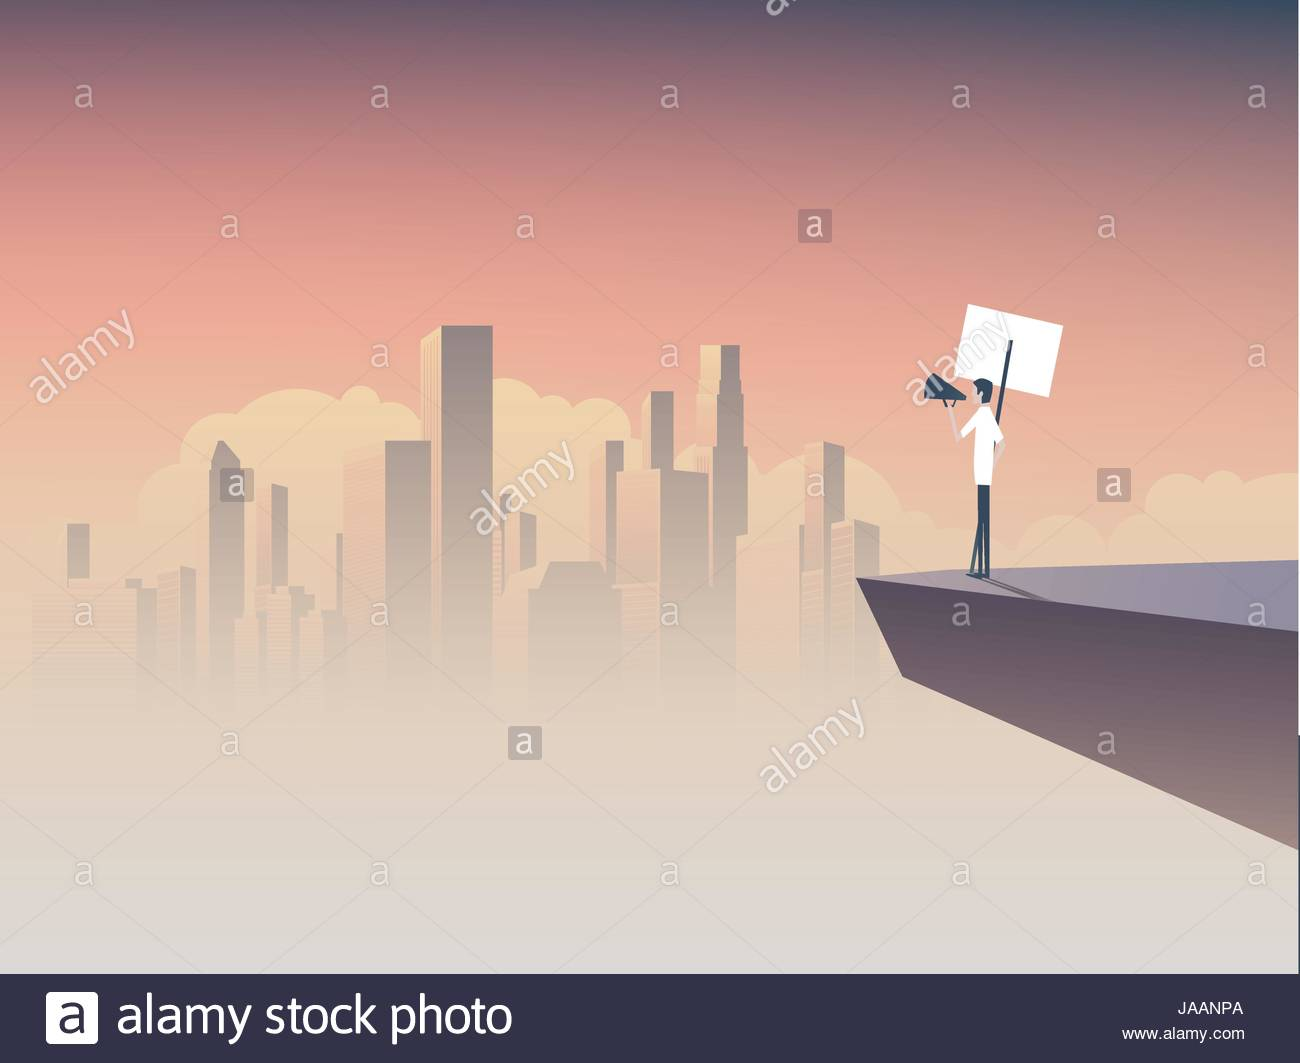 Protester speaking through megaphone or bullhorn and holding a placard, banner vector icon. Corporate background. - Stock Vector